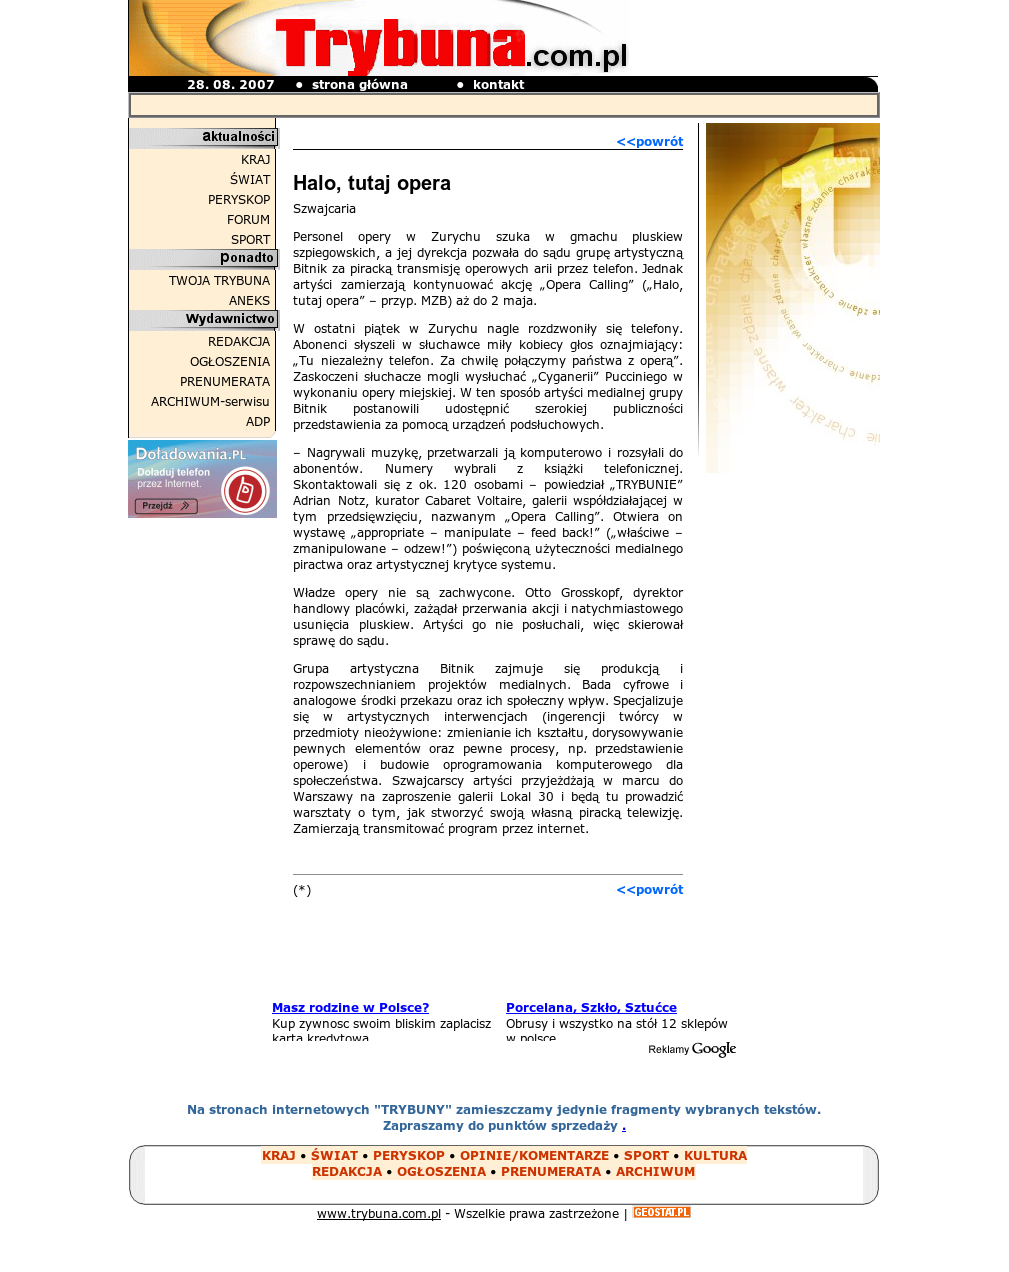 Screenshot of Trybuna Poland - Article on Opera Calling